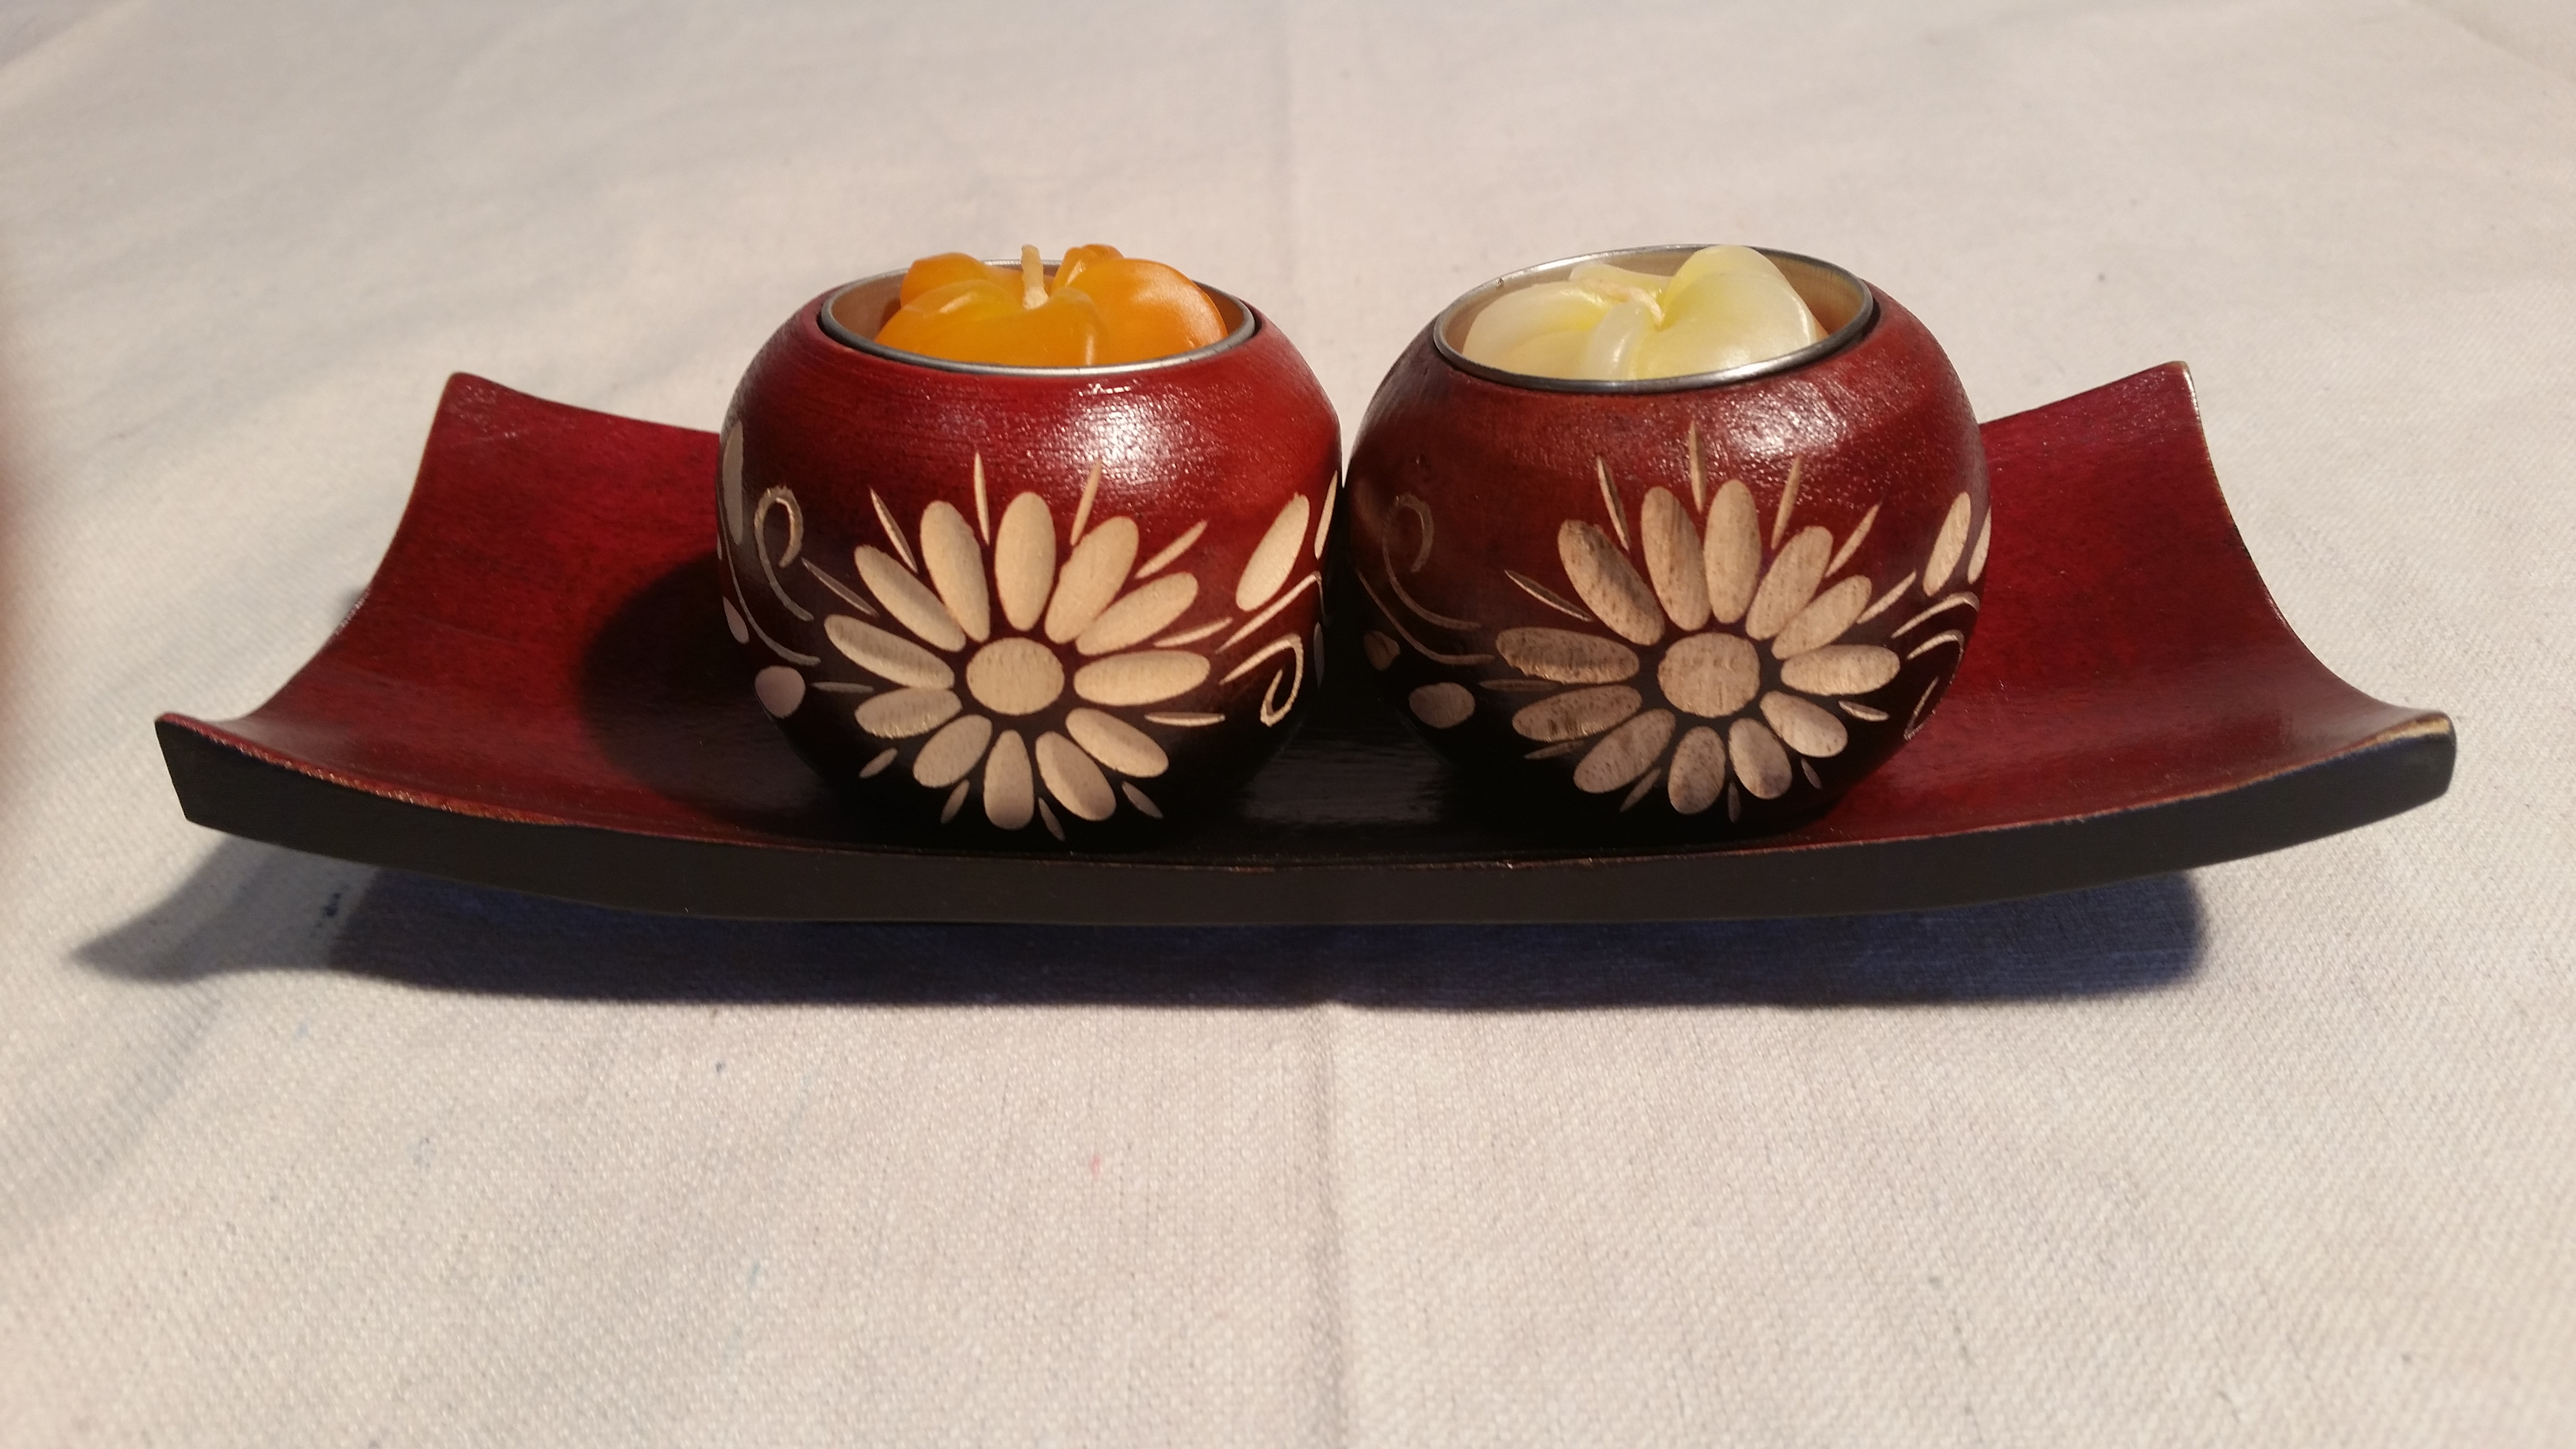 8 inch red candle bowl set 2 %282%29